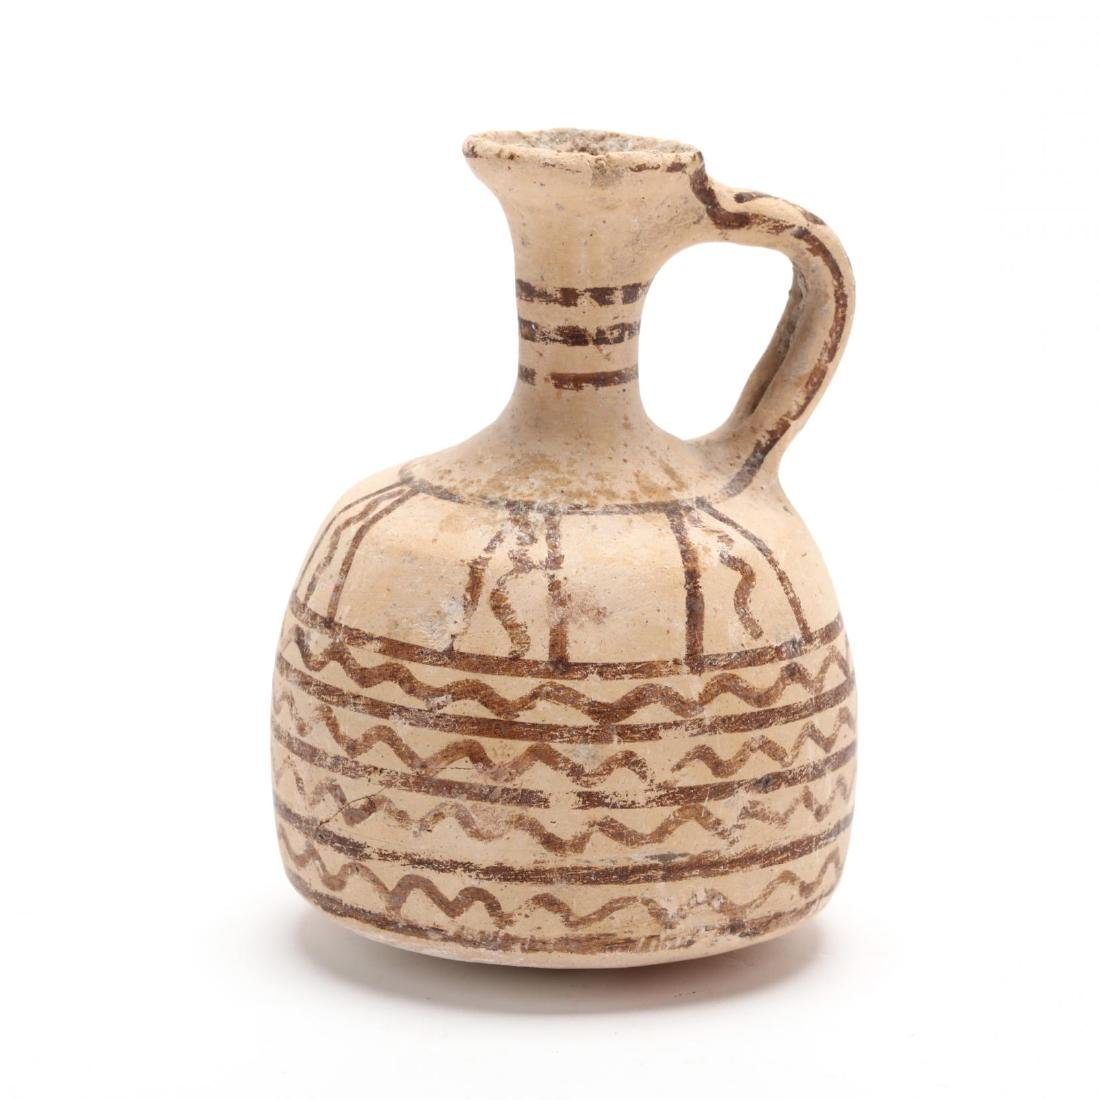 Cypriot Iron Age Bottle - 3